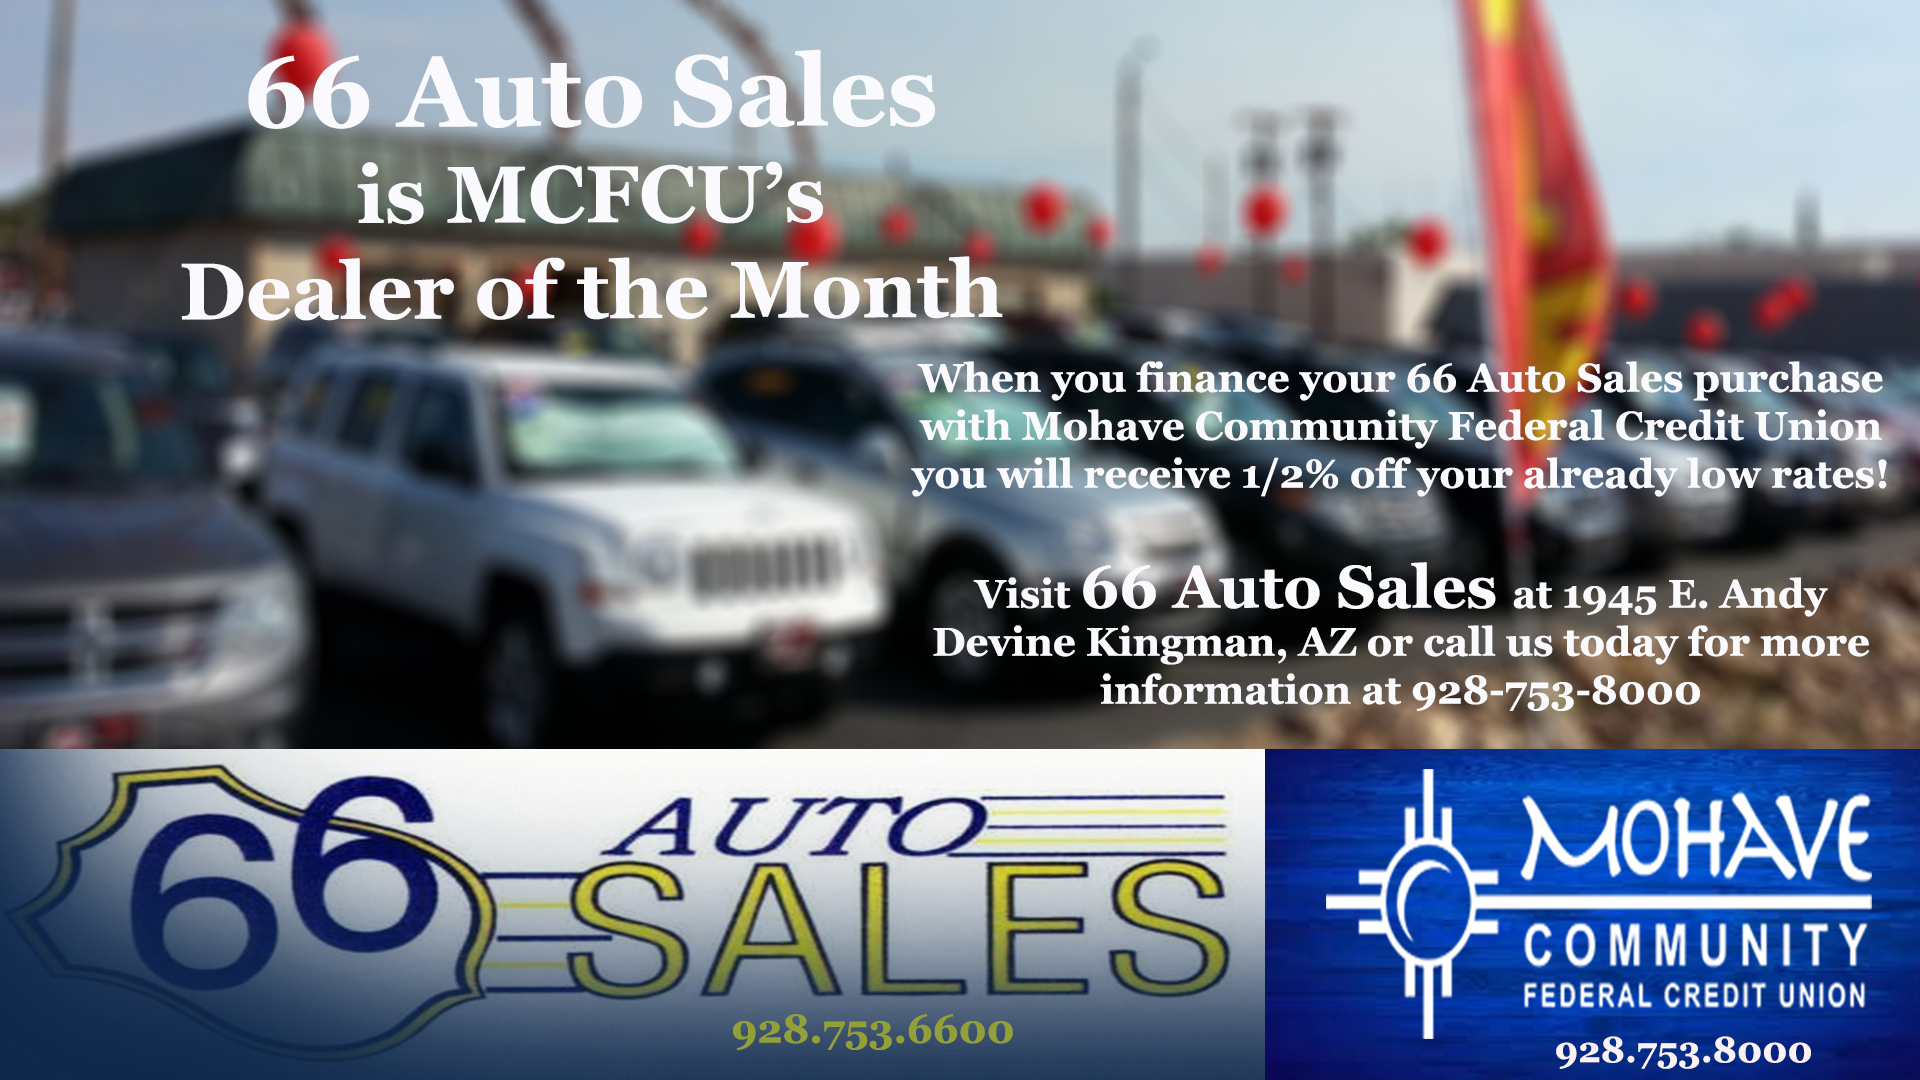 66 Auto Sales is our dealer of the month!  Call 928-753-8000 for more details.